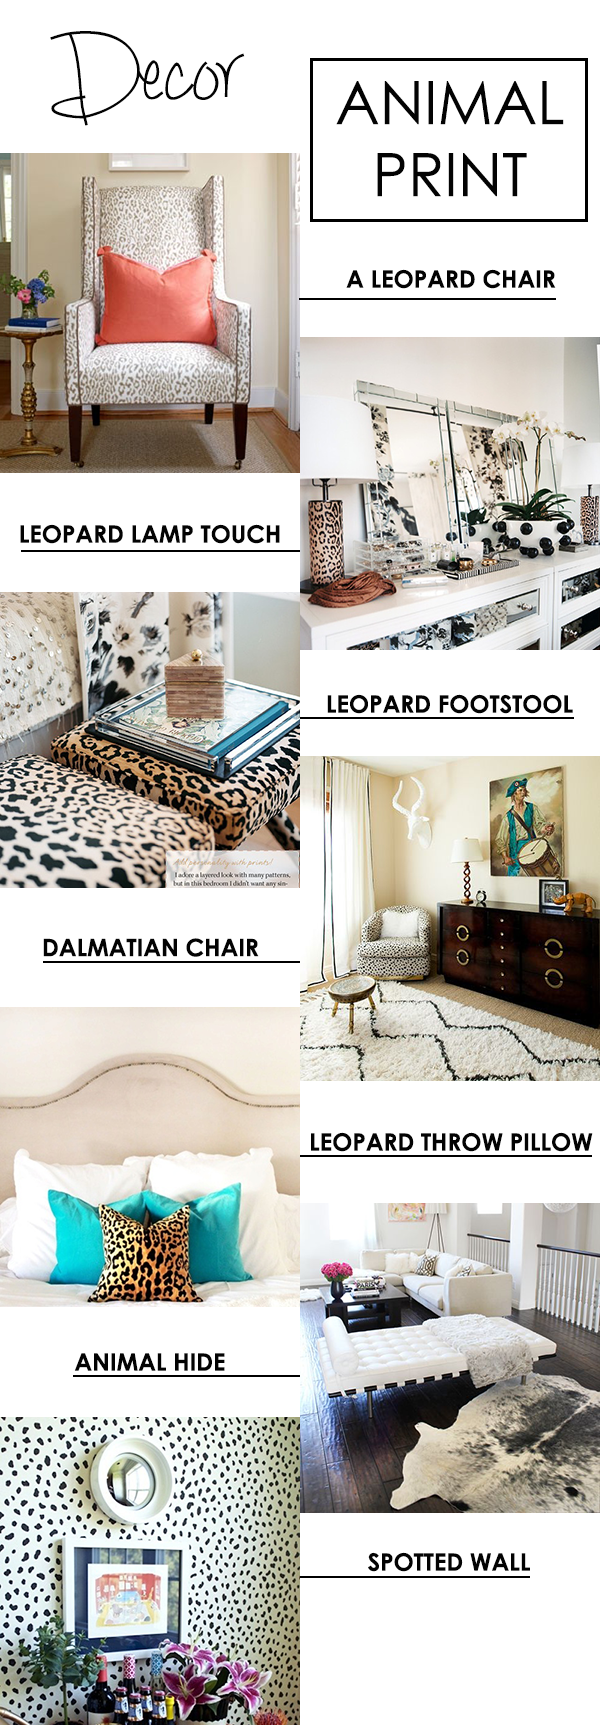 HOME DECOR INSPIRATION / ANIMAL PRINT